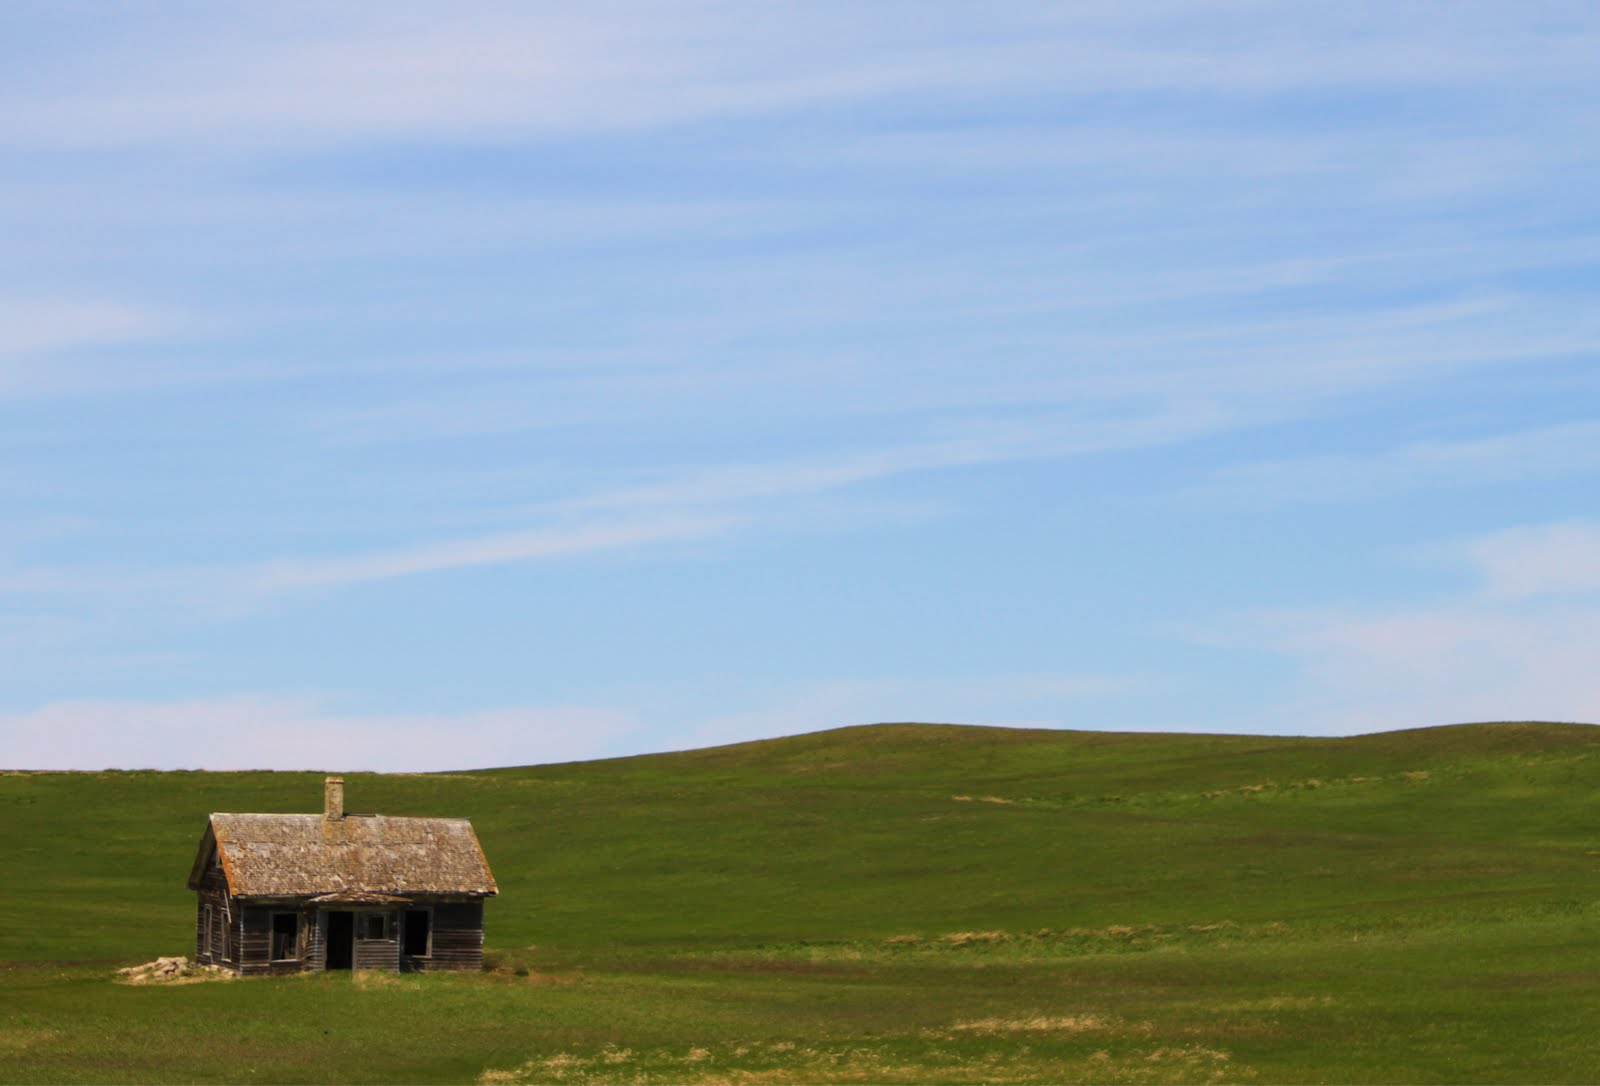 http://upload.wikimedia.org/wikipedia/commons/4/40/Prairie_Homestead.jpg